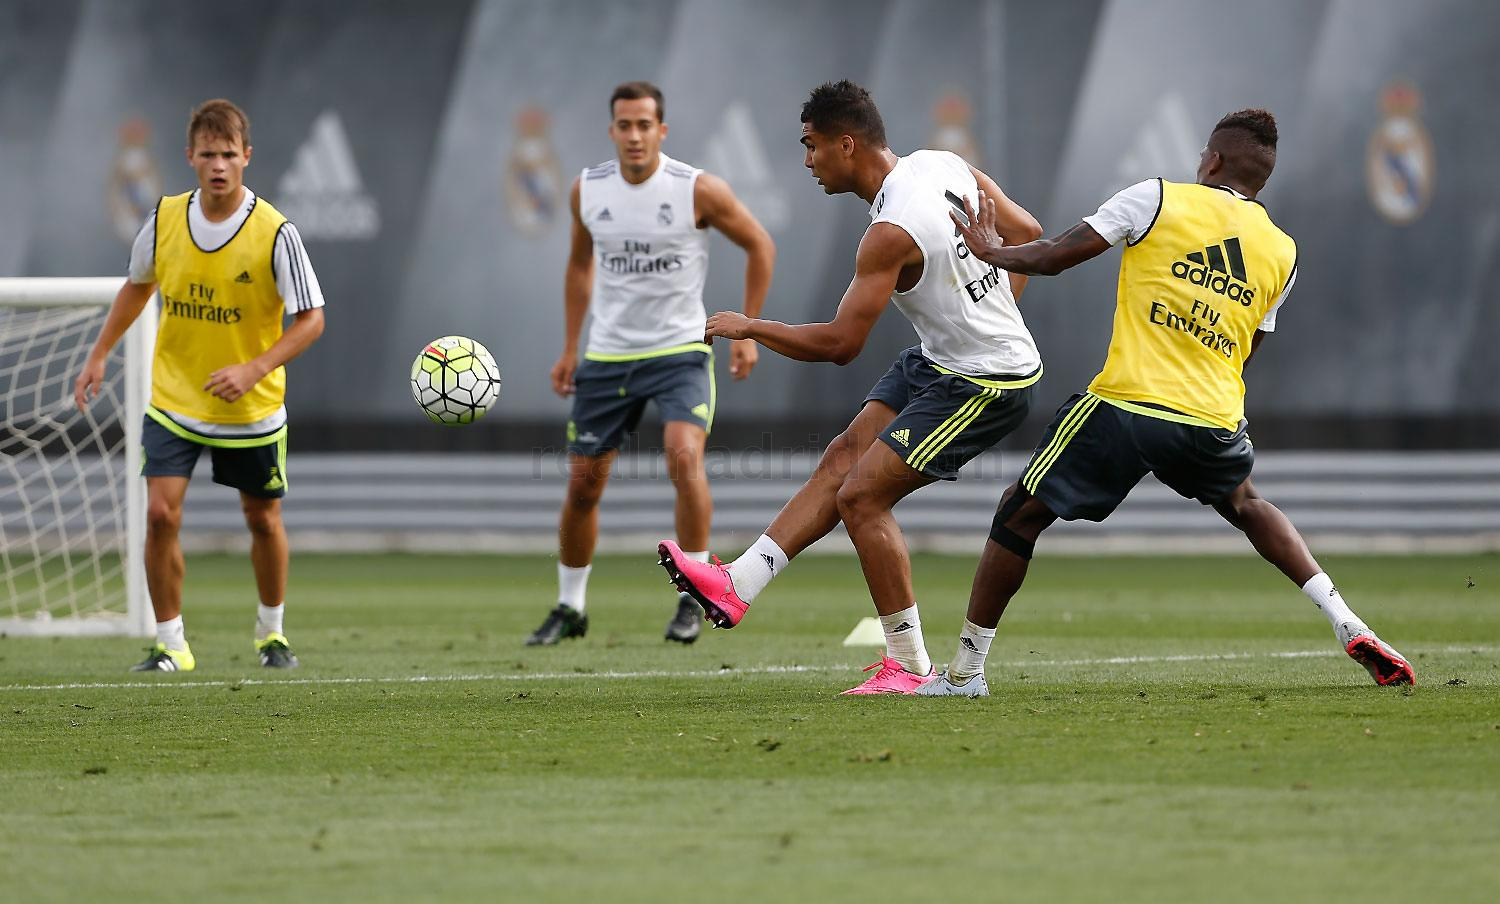 Real Madrid - Entrenamiento del Real Madrid - 31-08-2015